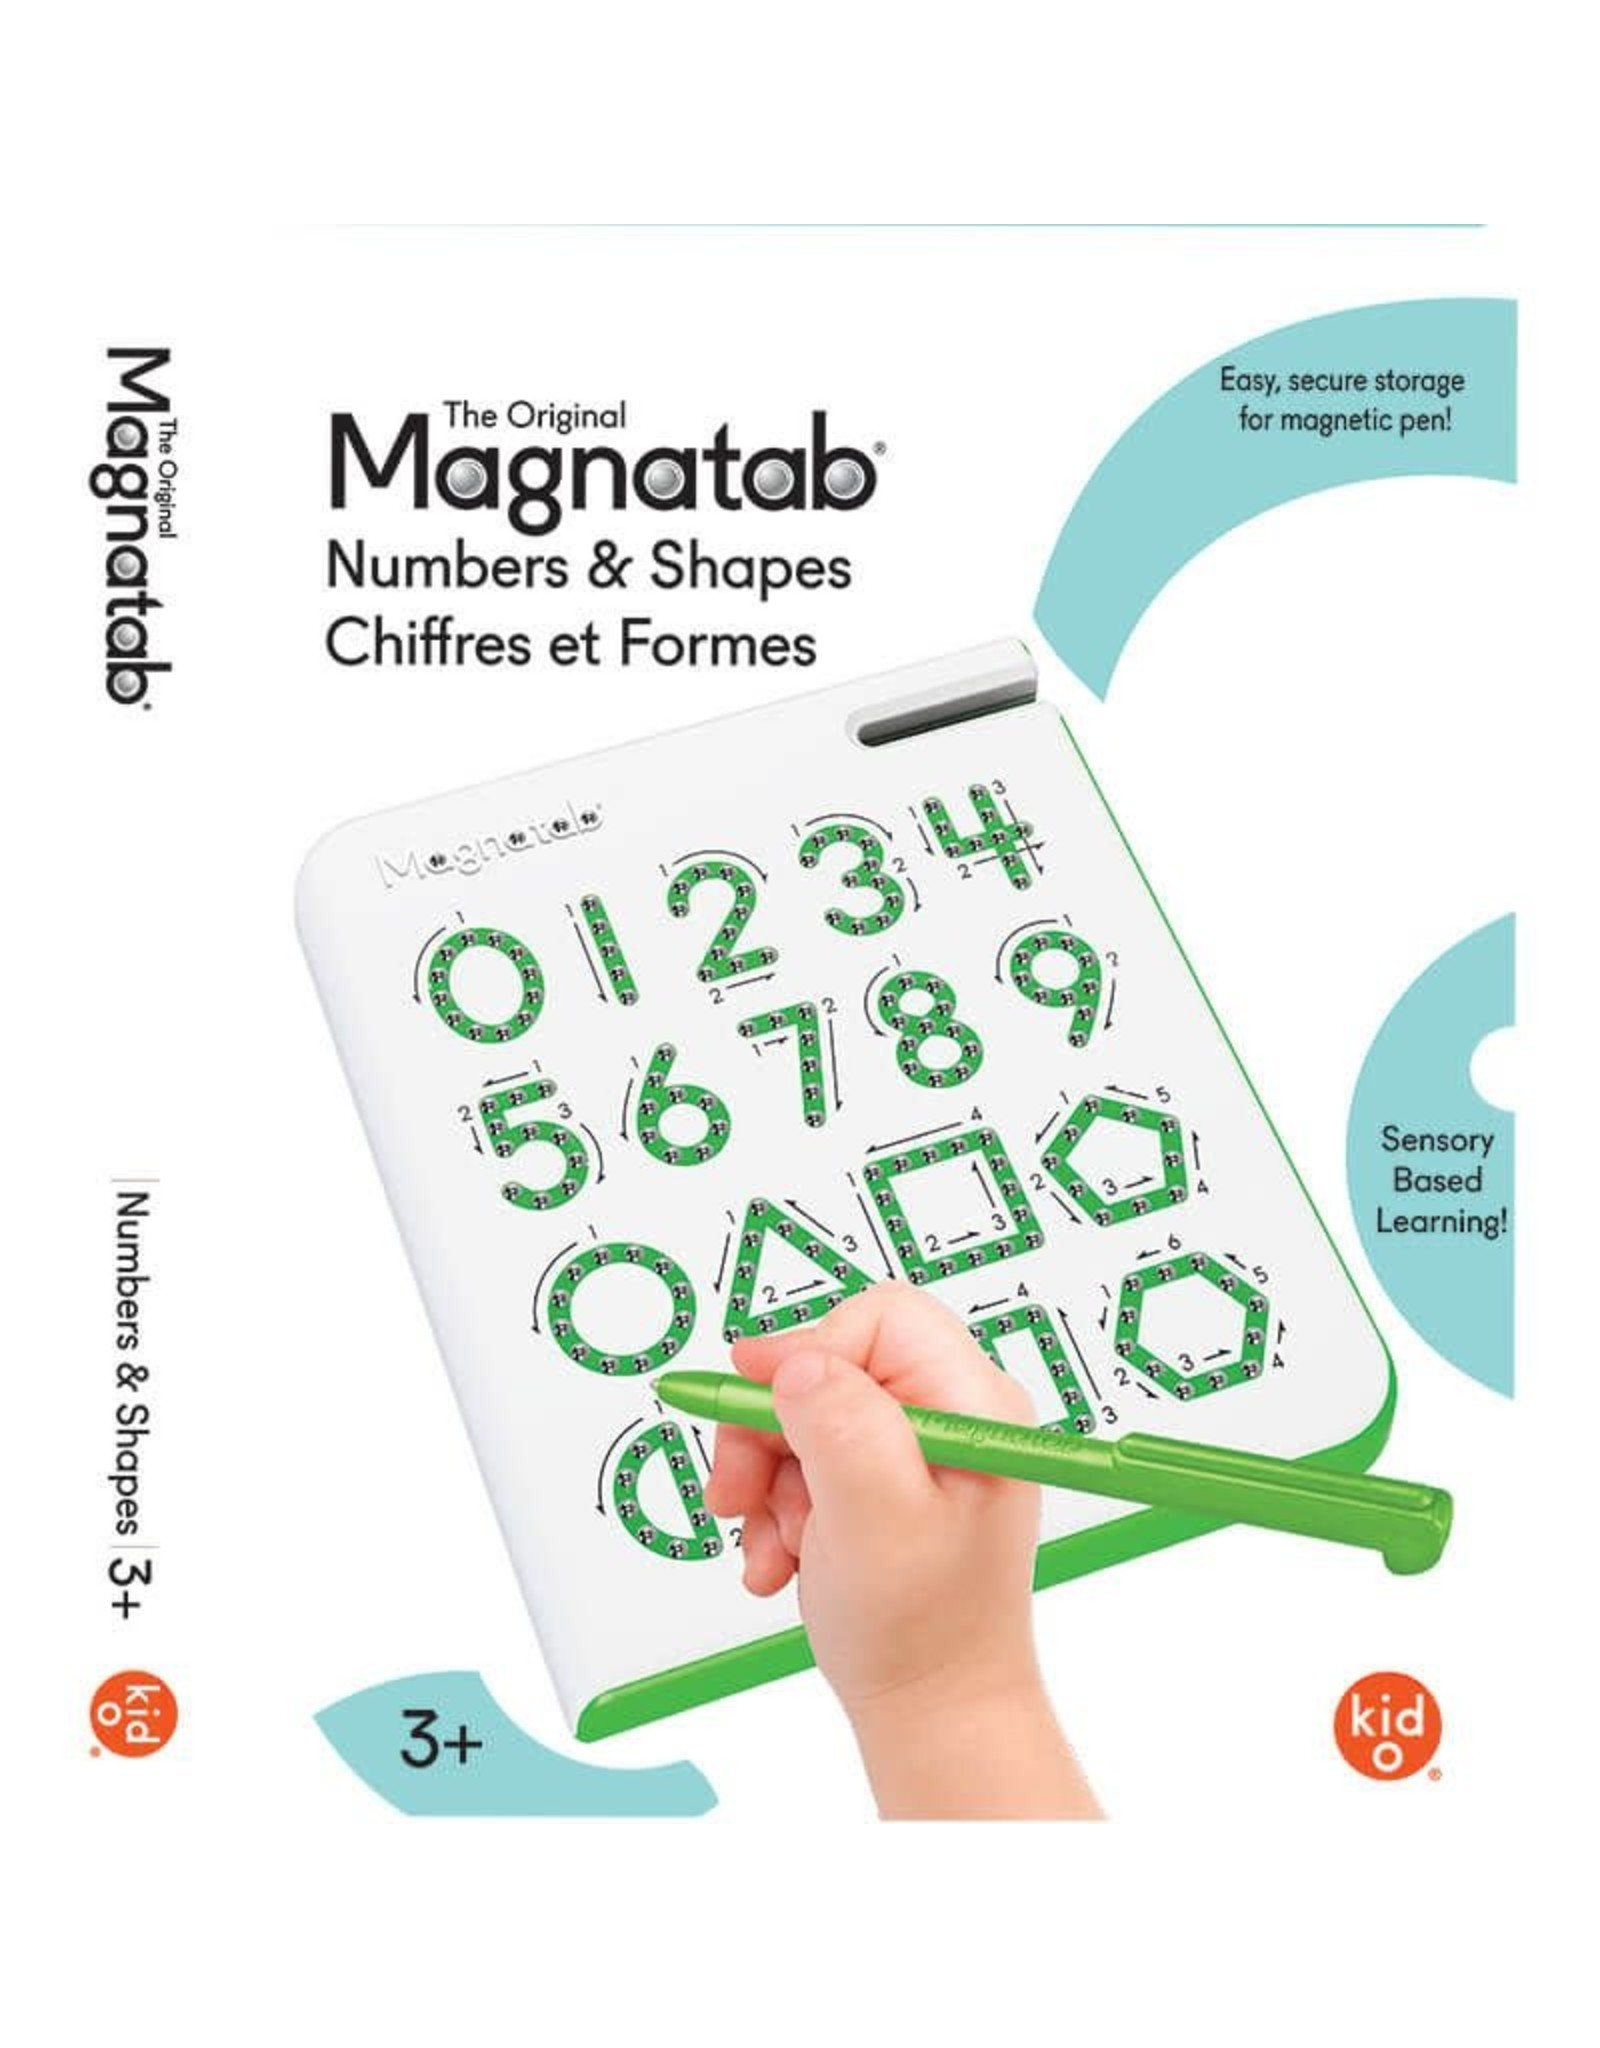 kid o Magnatab Numbers & Shapes